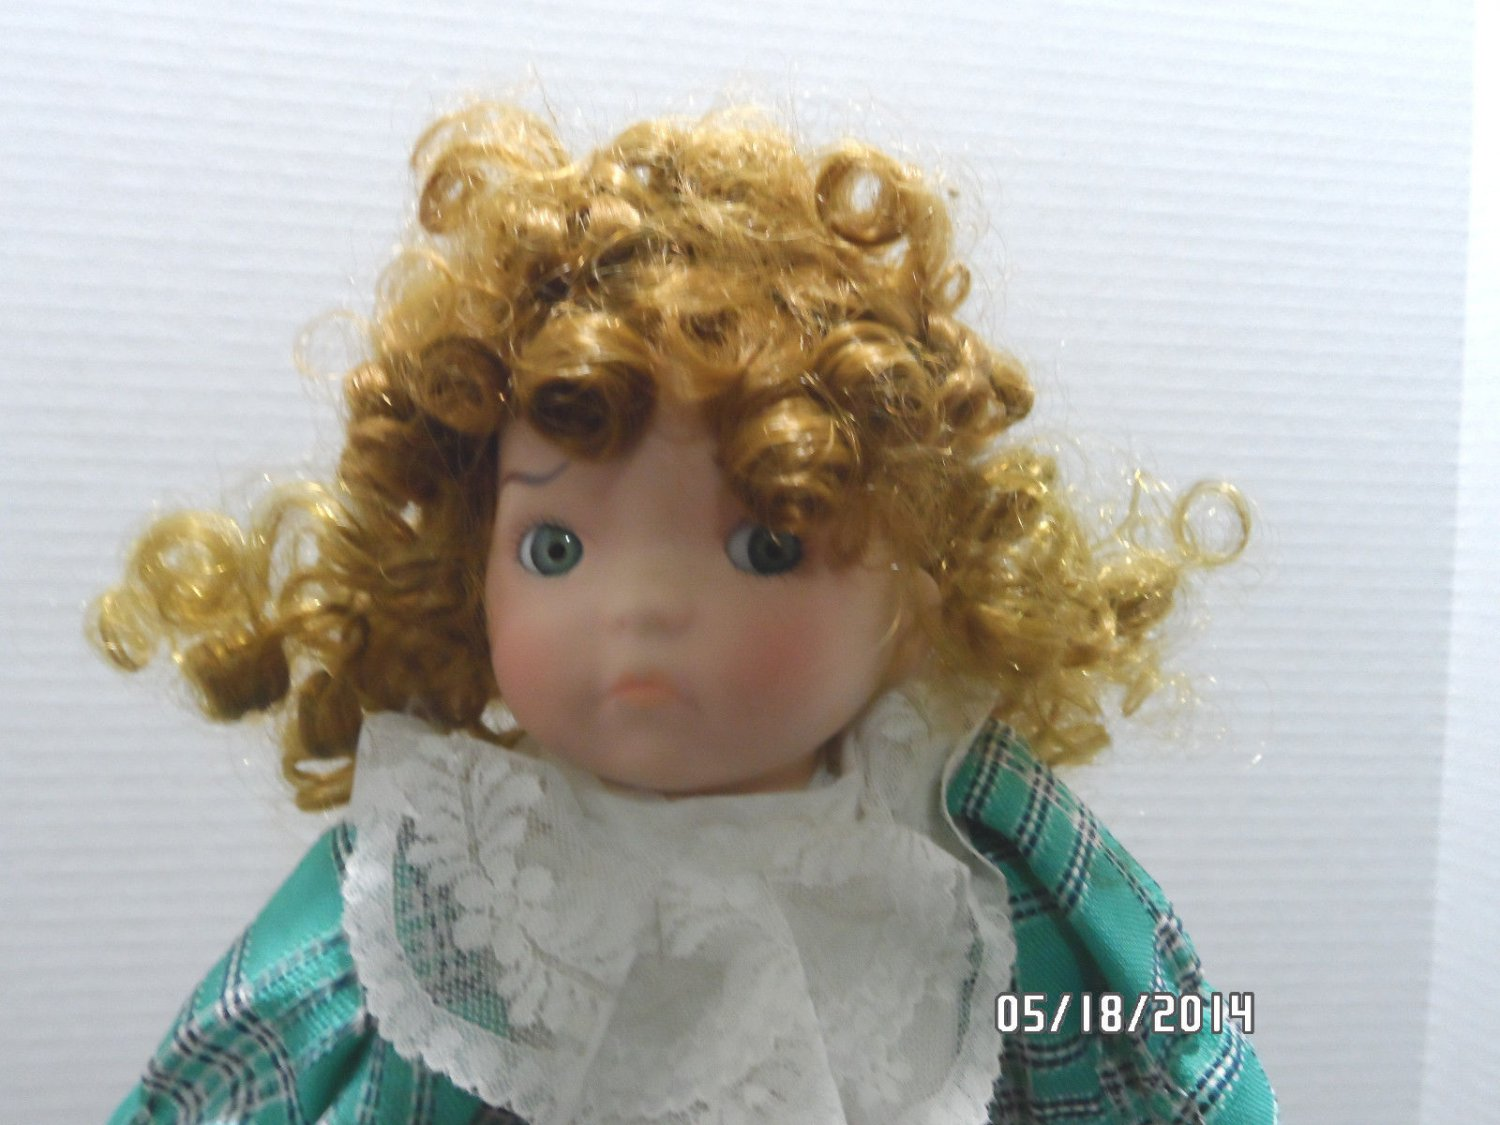 1990 Porcelain Girl Doll by Heritage Mint